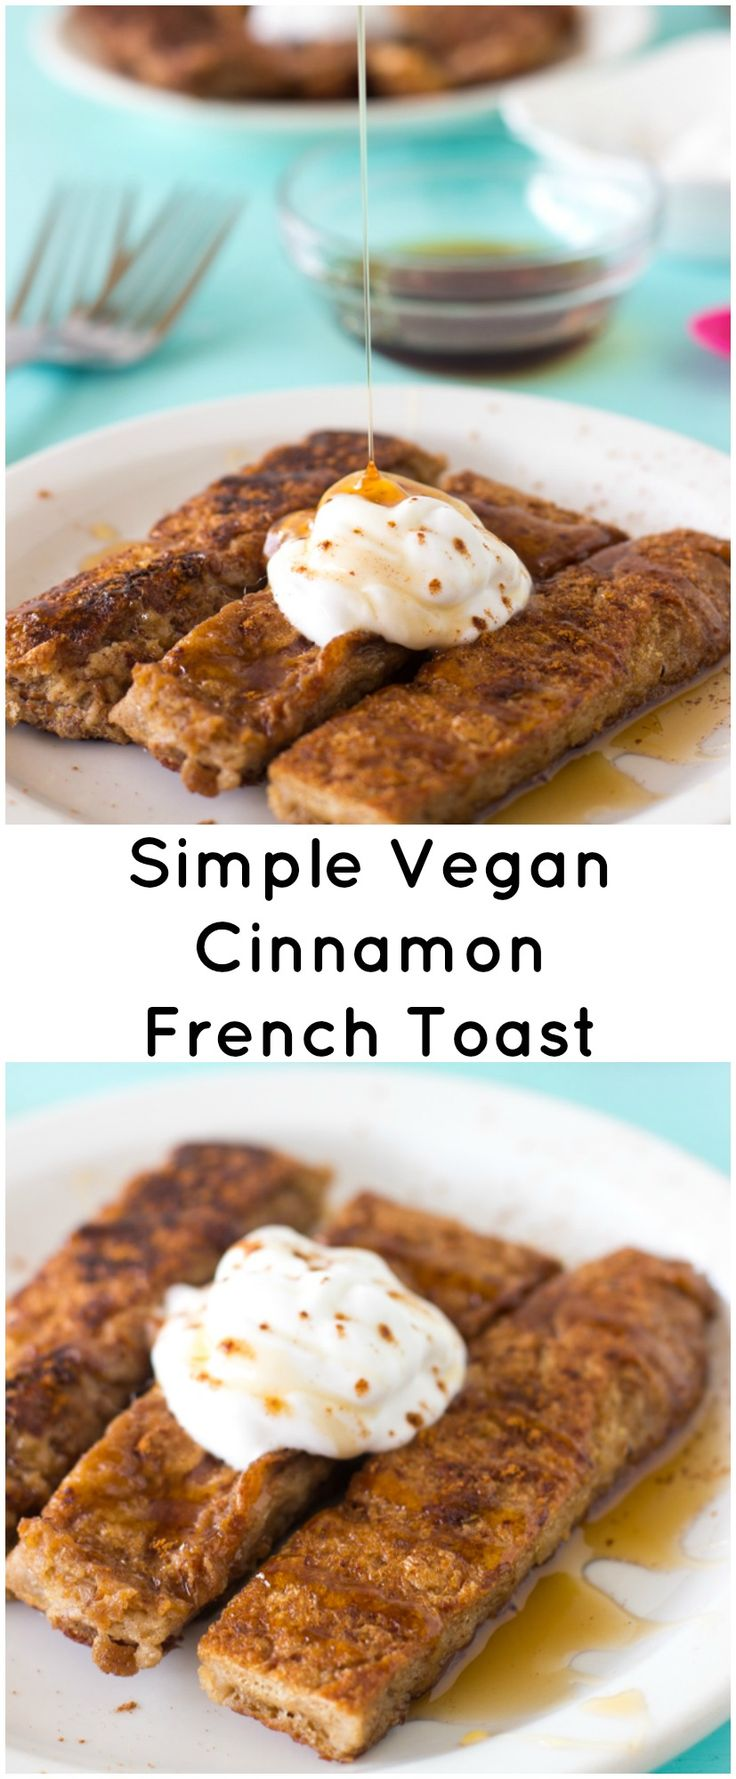 #Vegan Cinnamon French Toast